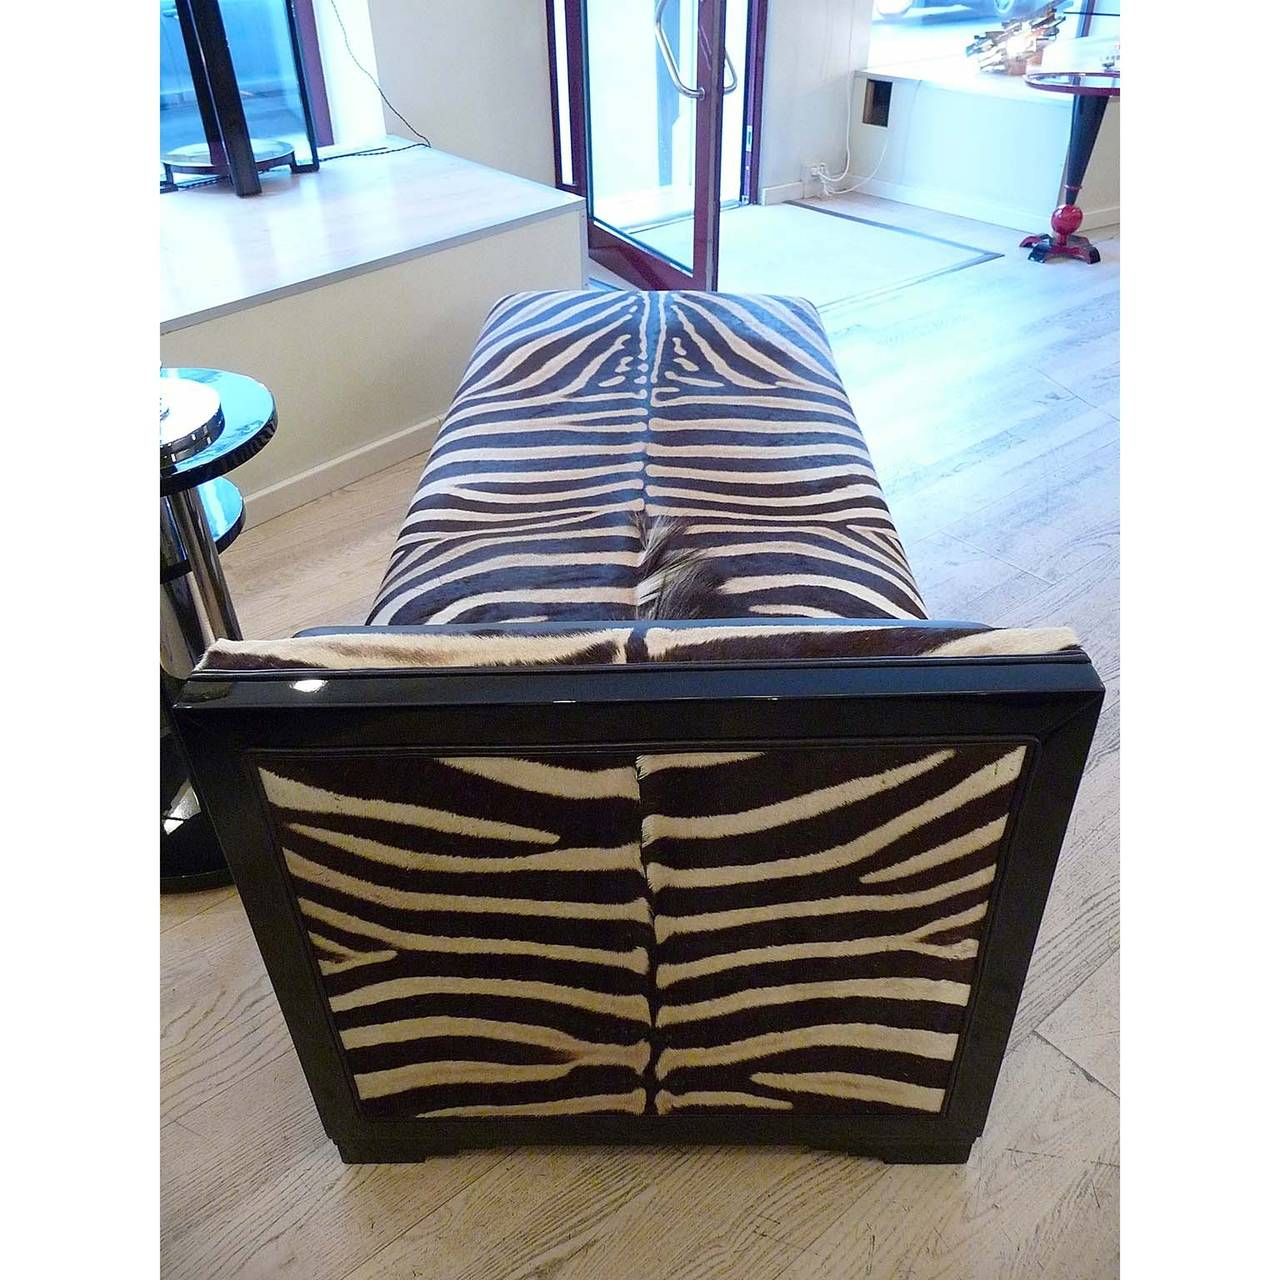 Exquisite art deco french chaise longue with zebra skin for Art nouveau chaise longue